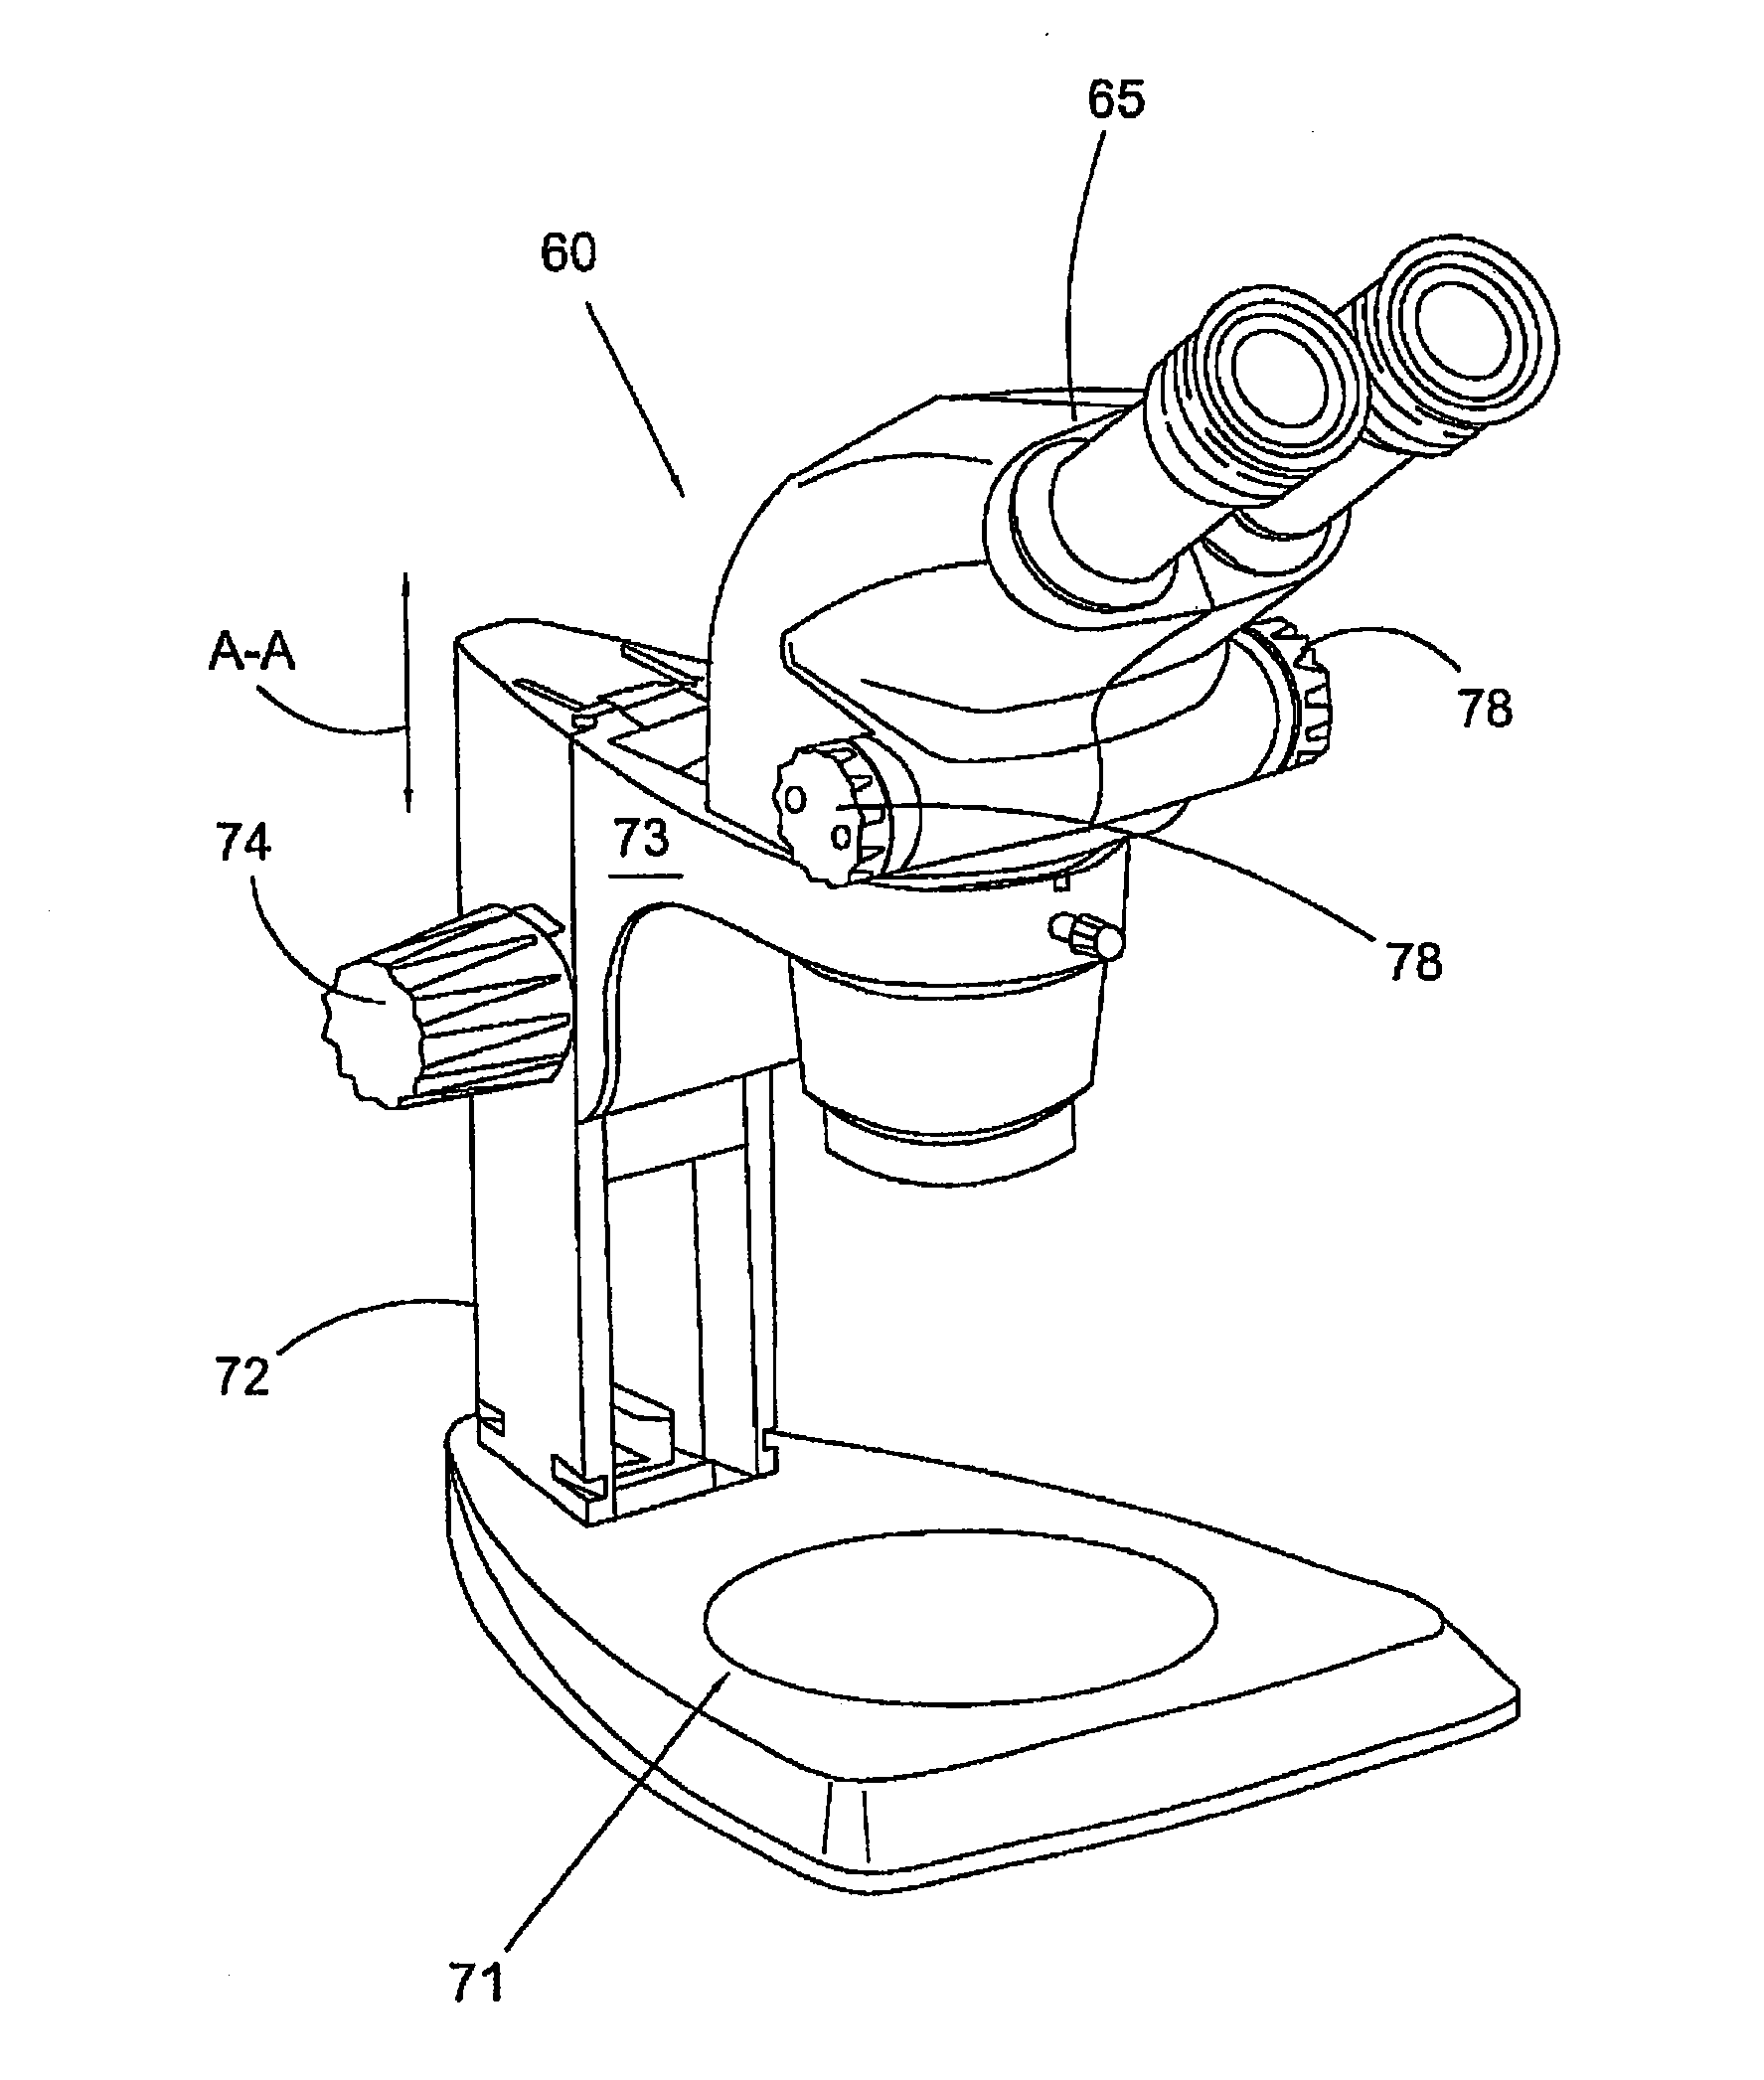 pictures of binocular microscope drawing kidskunst info Compound Light Microscope Diagram binocular microscope drawing imgkid the image